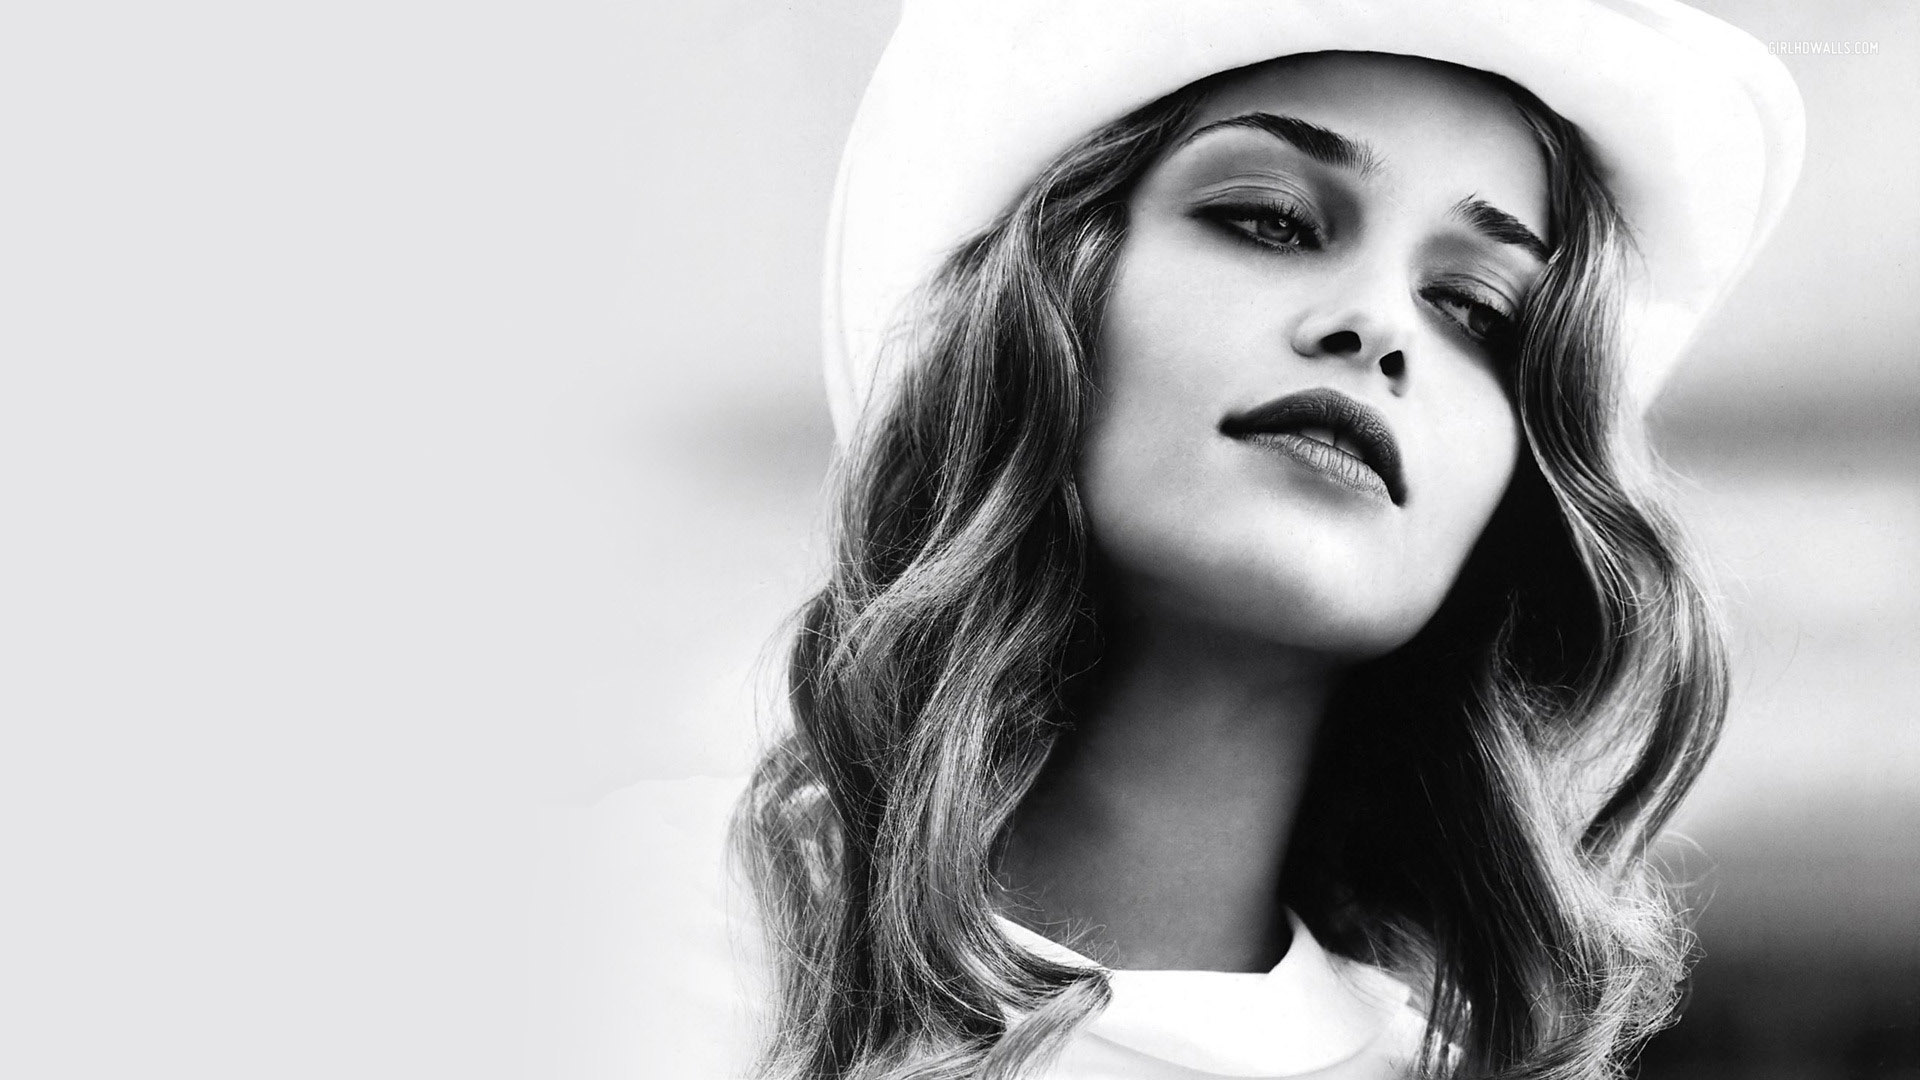 ana beatriz barros widescreen desktop wallpaper 1108